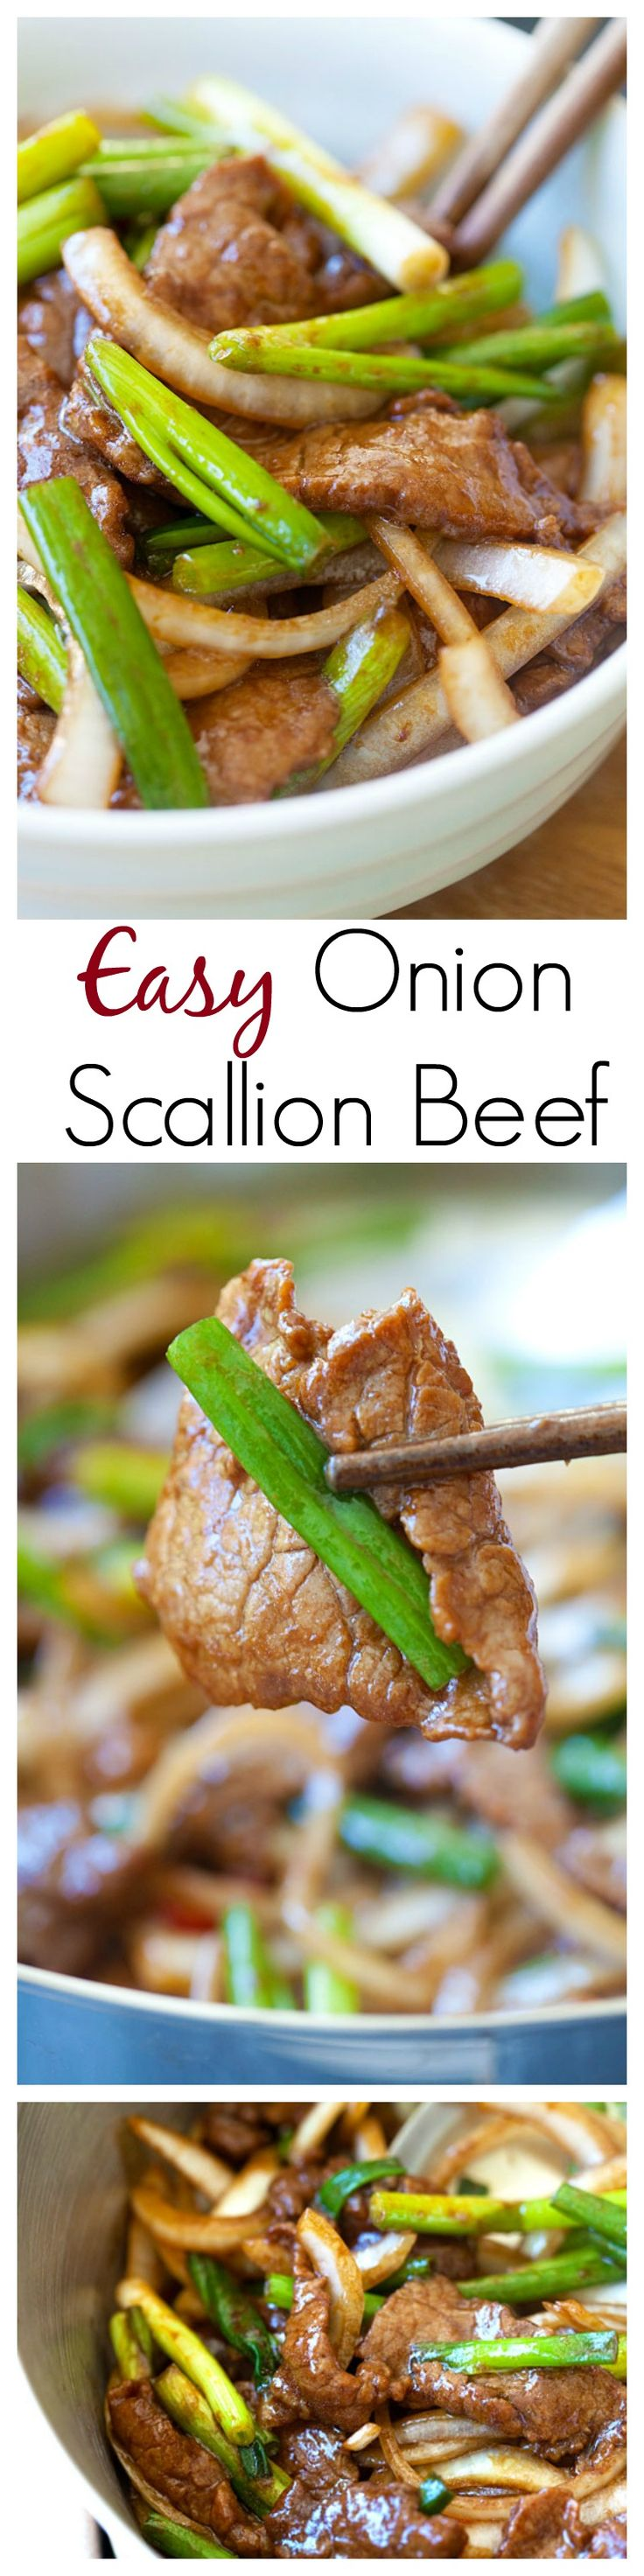 Onion scallion beef – tender juicy beef stir-fry with onions and scallions in Chinese brown sauce. Delicious and easy recipe that takes only 20 mins | rasamalaysia.com | Asian food, Asian beef, Asian dinner recipes